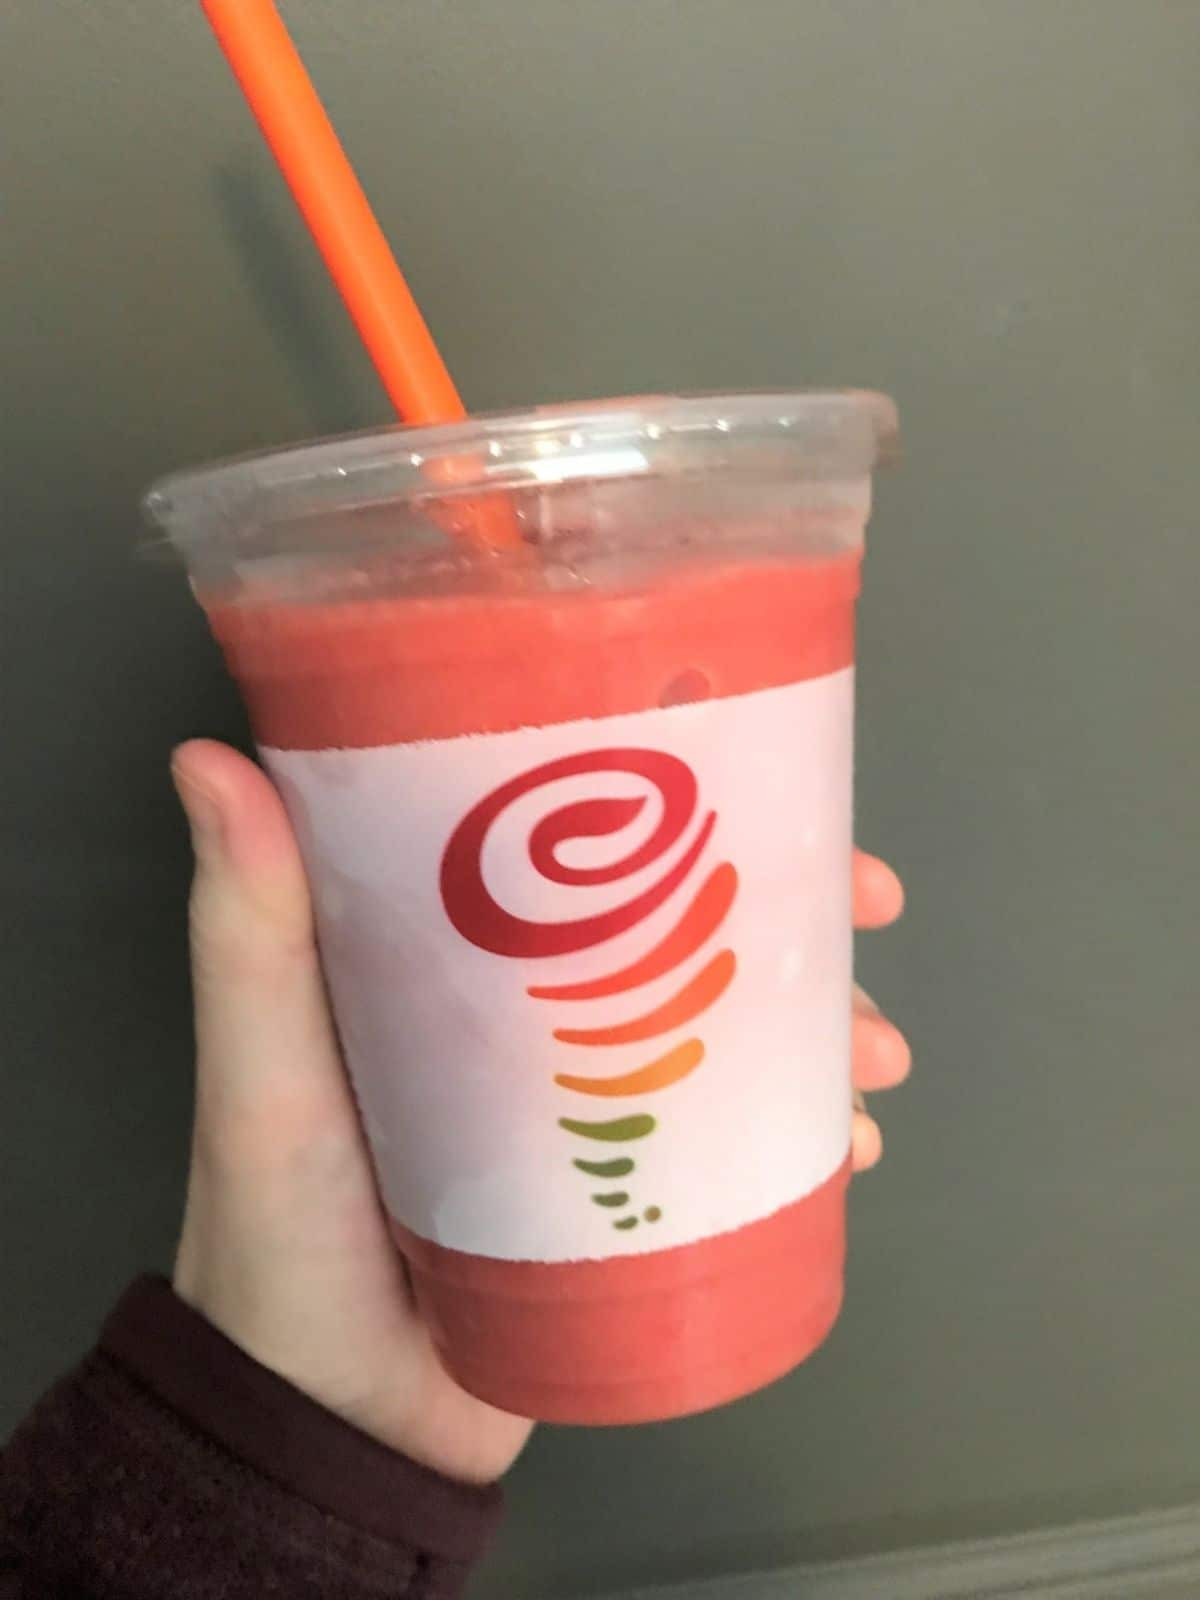 Pomegranate Paradise Smoothie from jamba juice in a clear cup with an orange straw being held in a hand